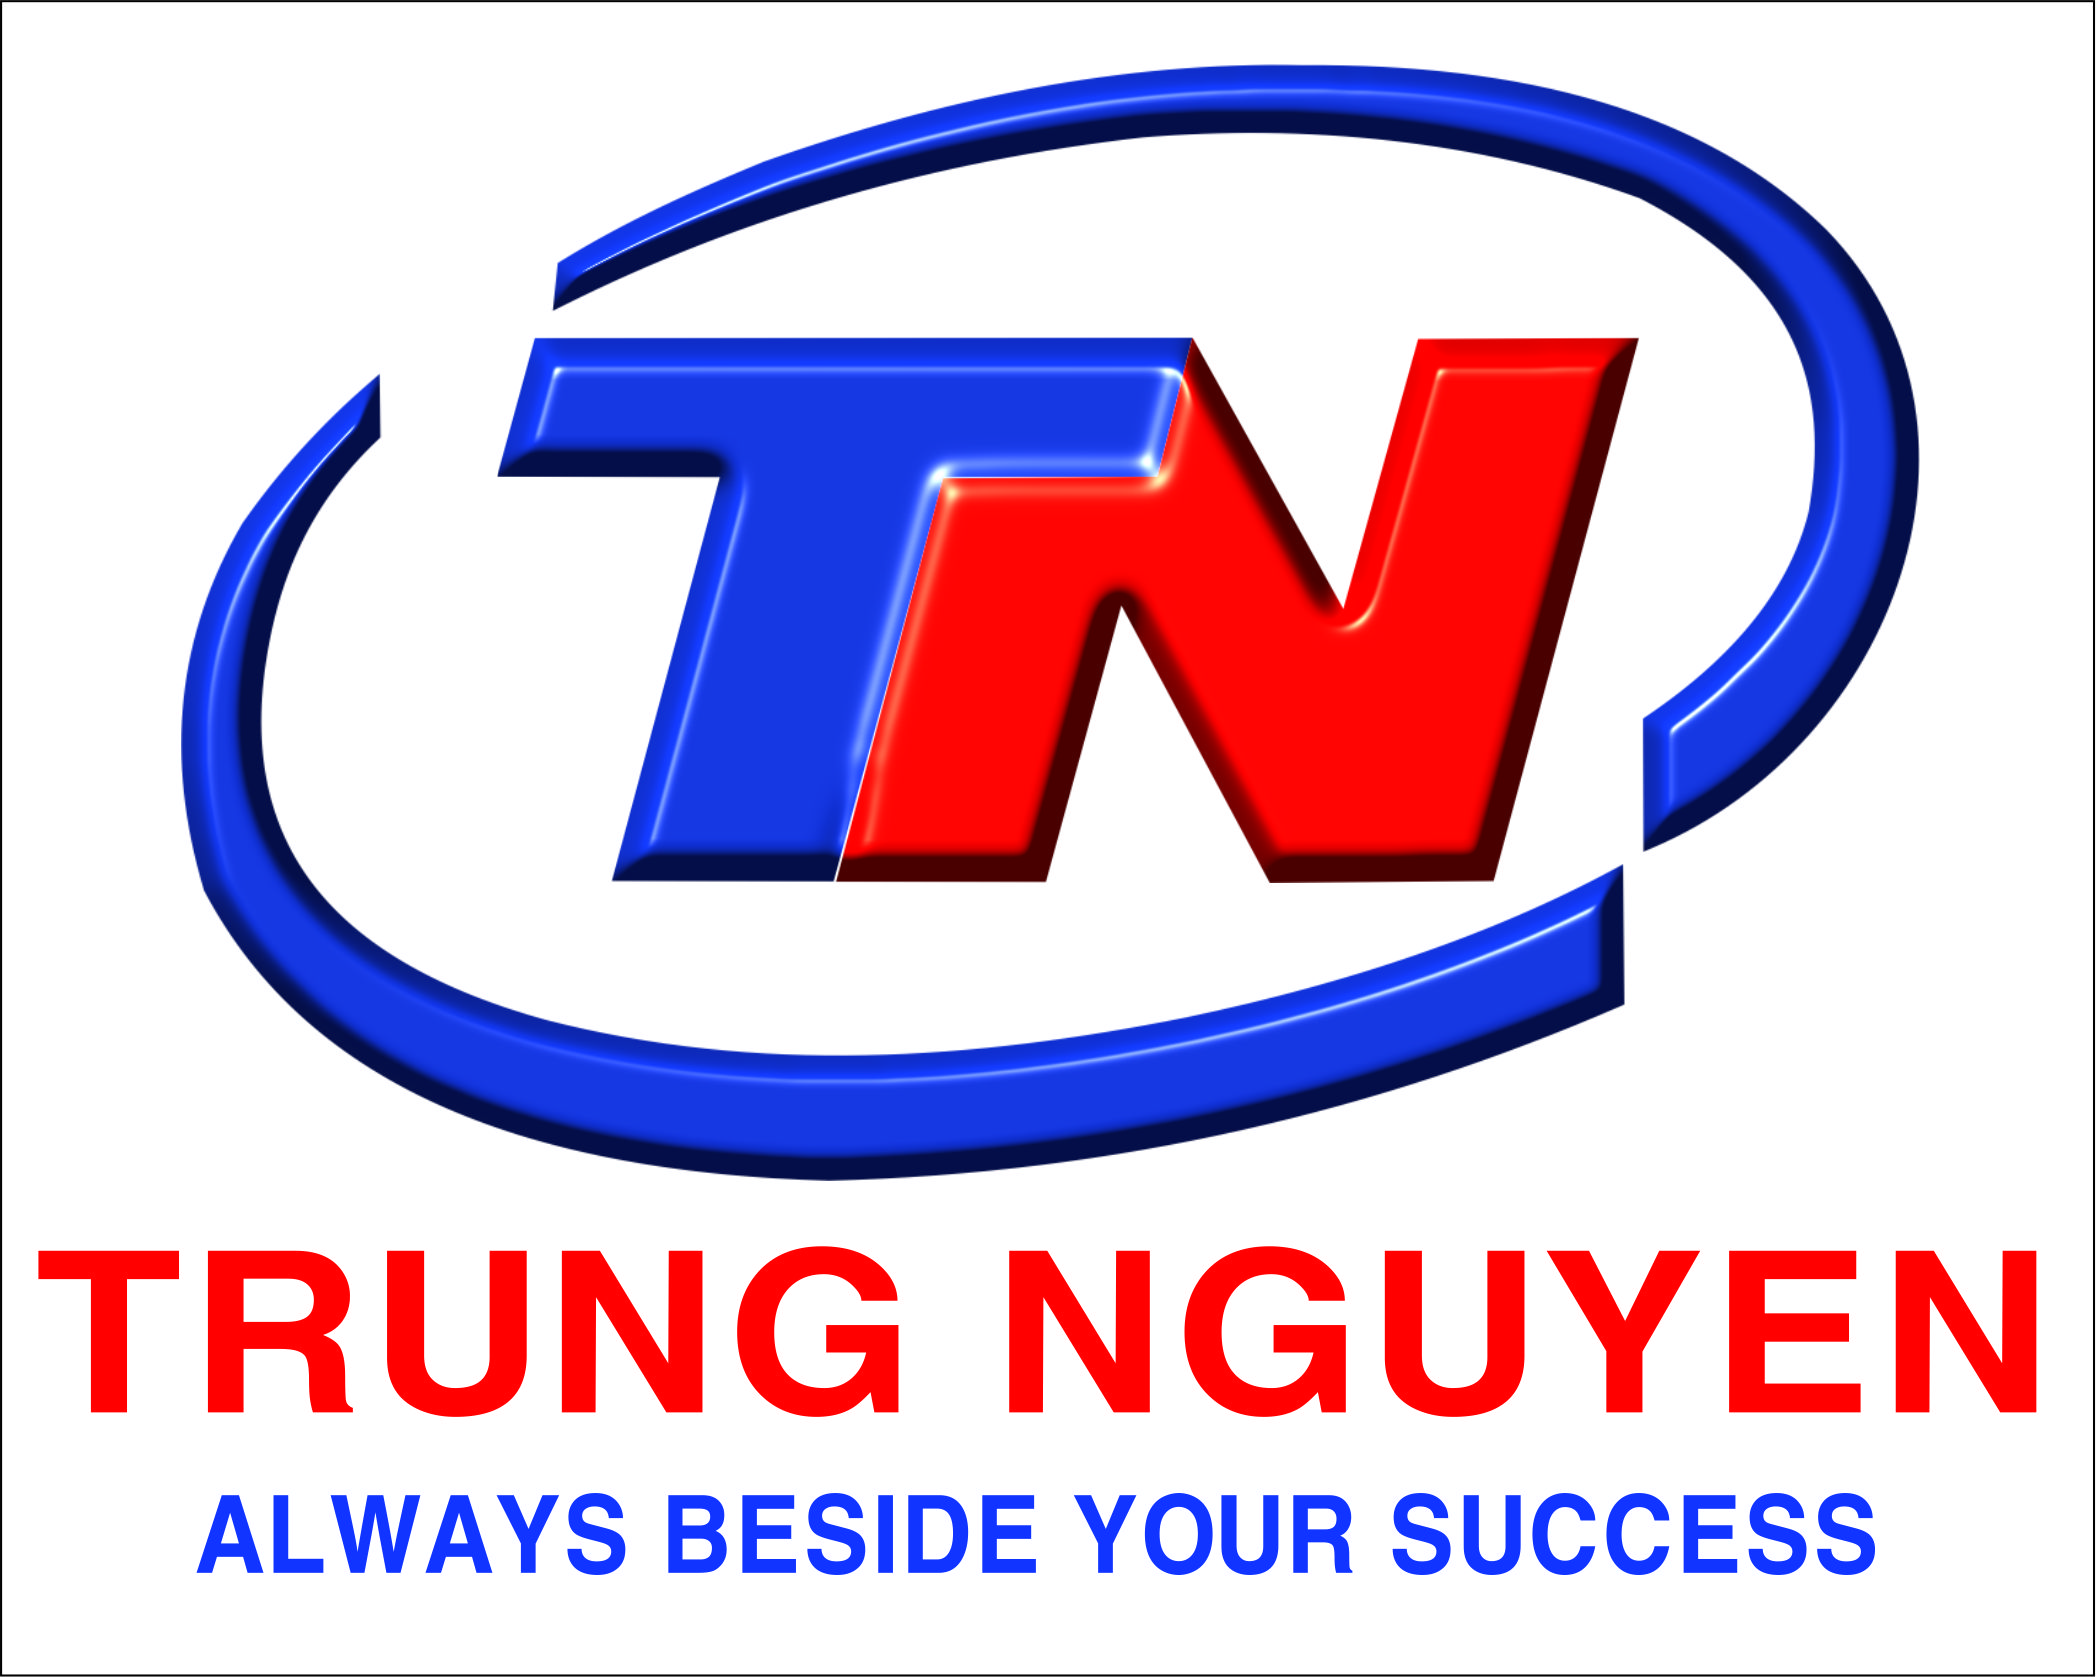 trungnguyenbags.com